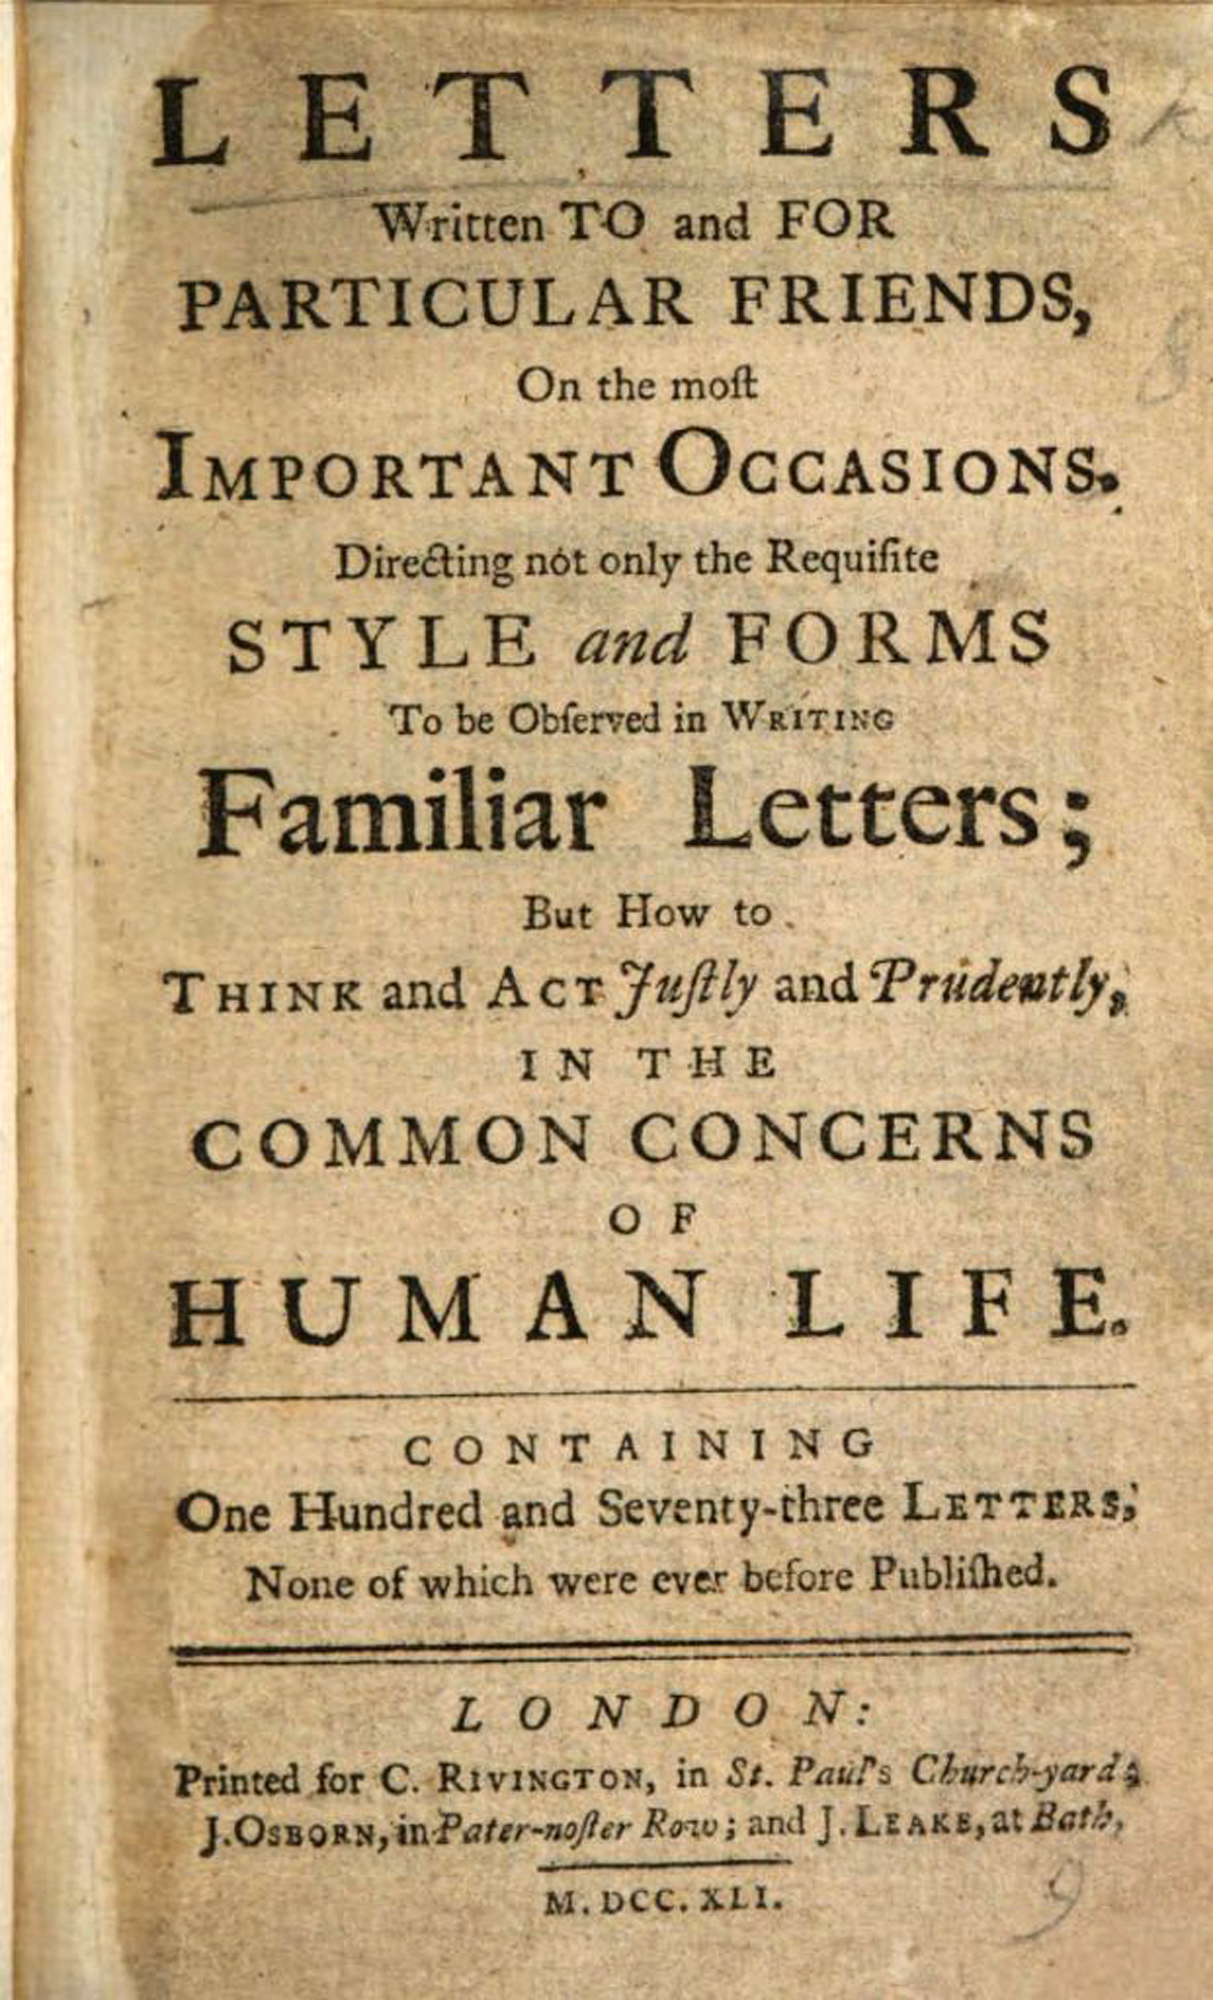 Letters Written to and for Particular Friendsby Samuel Richardson, 1741